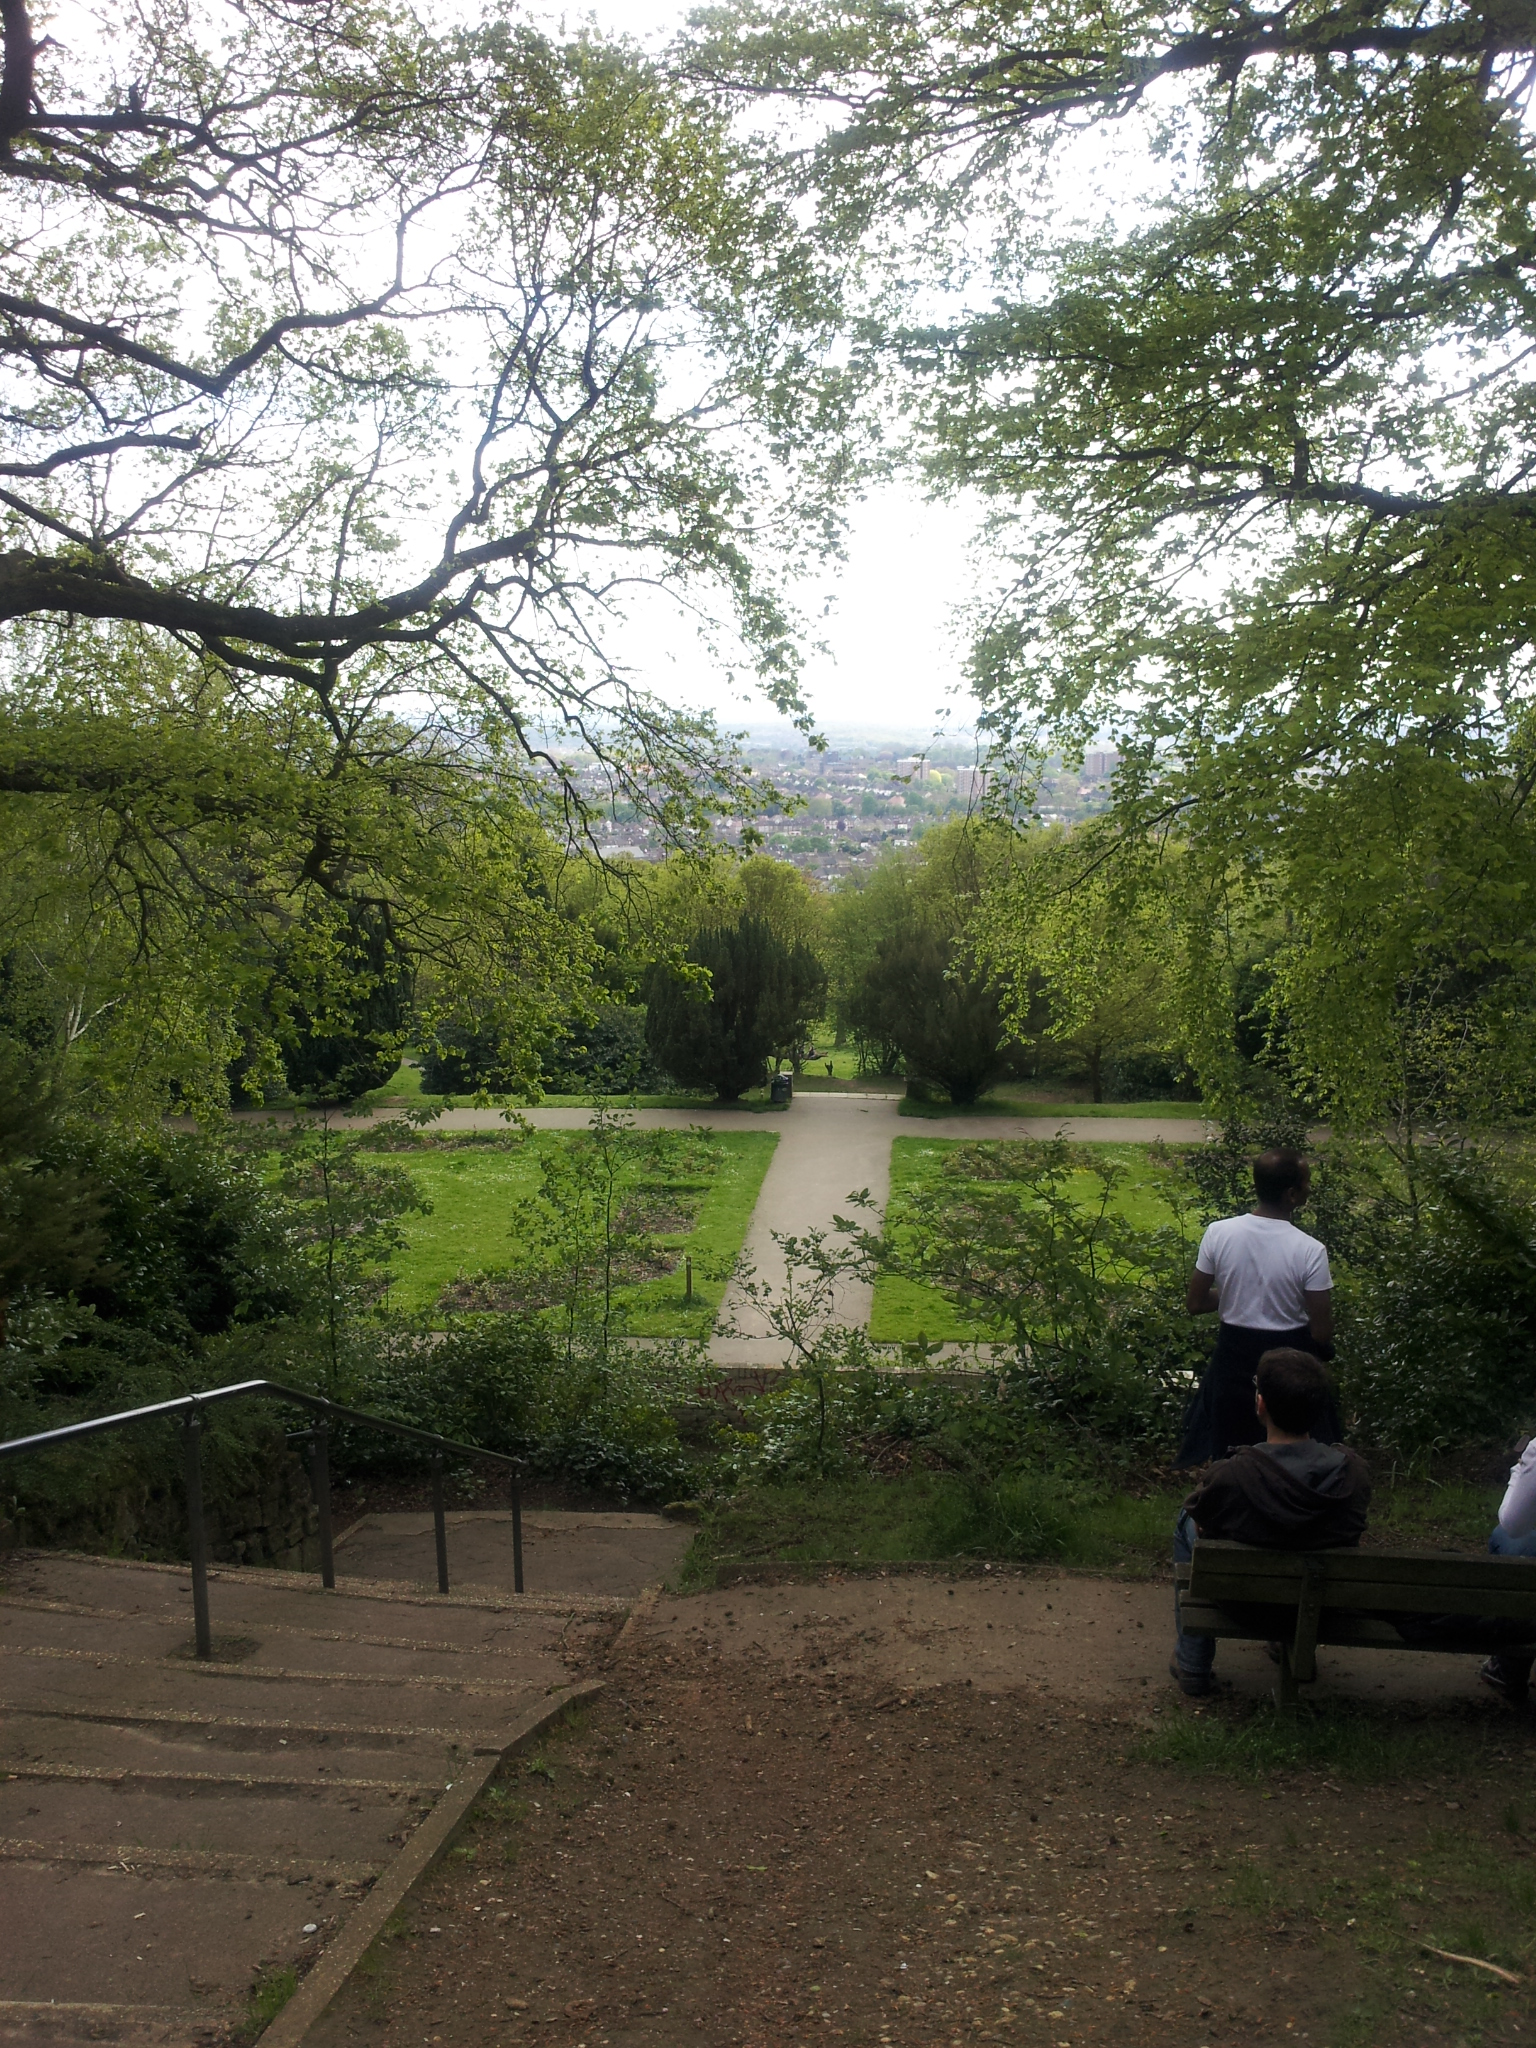 Walking London - View from Severndroog Castle